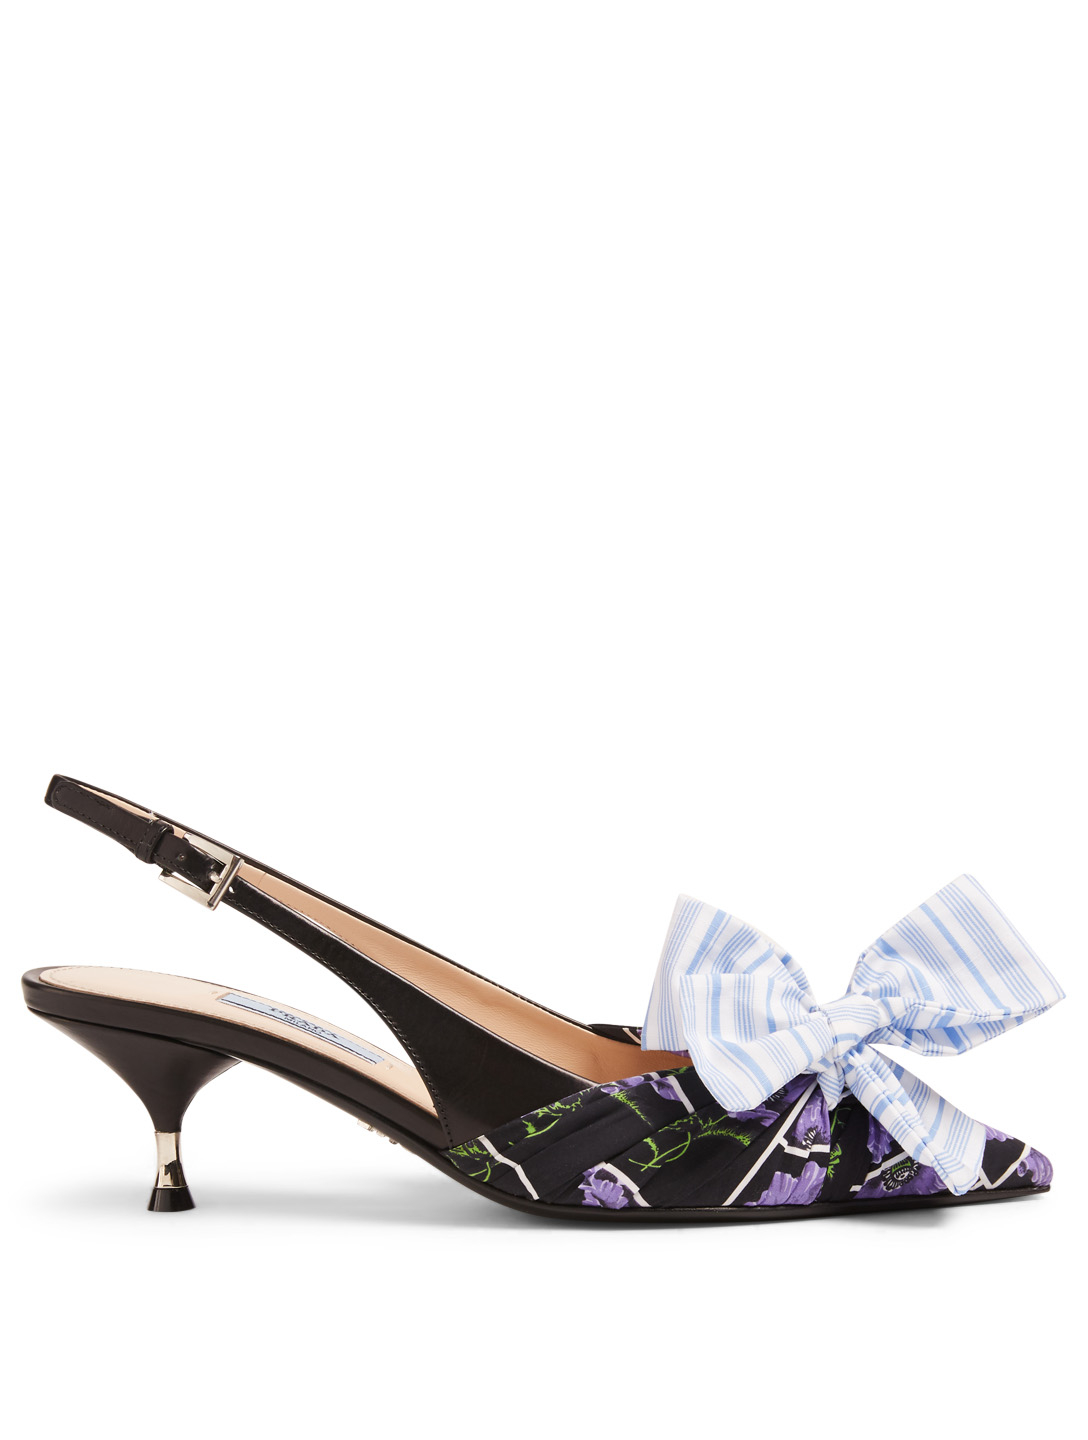 PRADA Floral Slingback Pumps With Striped Bow Designers Black